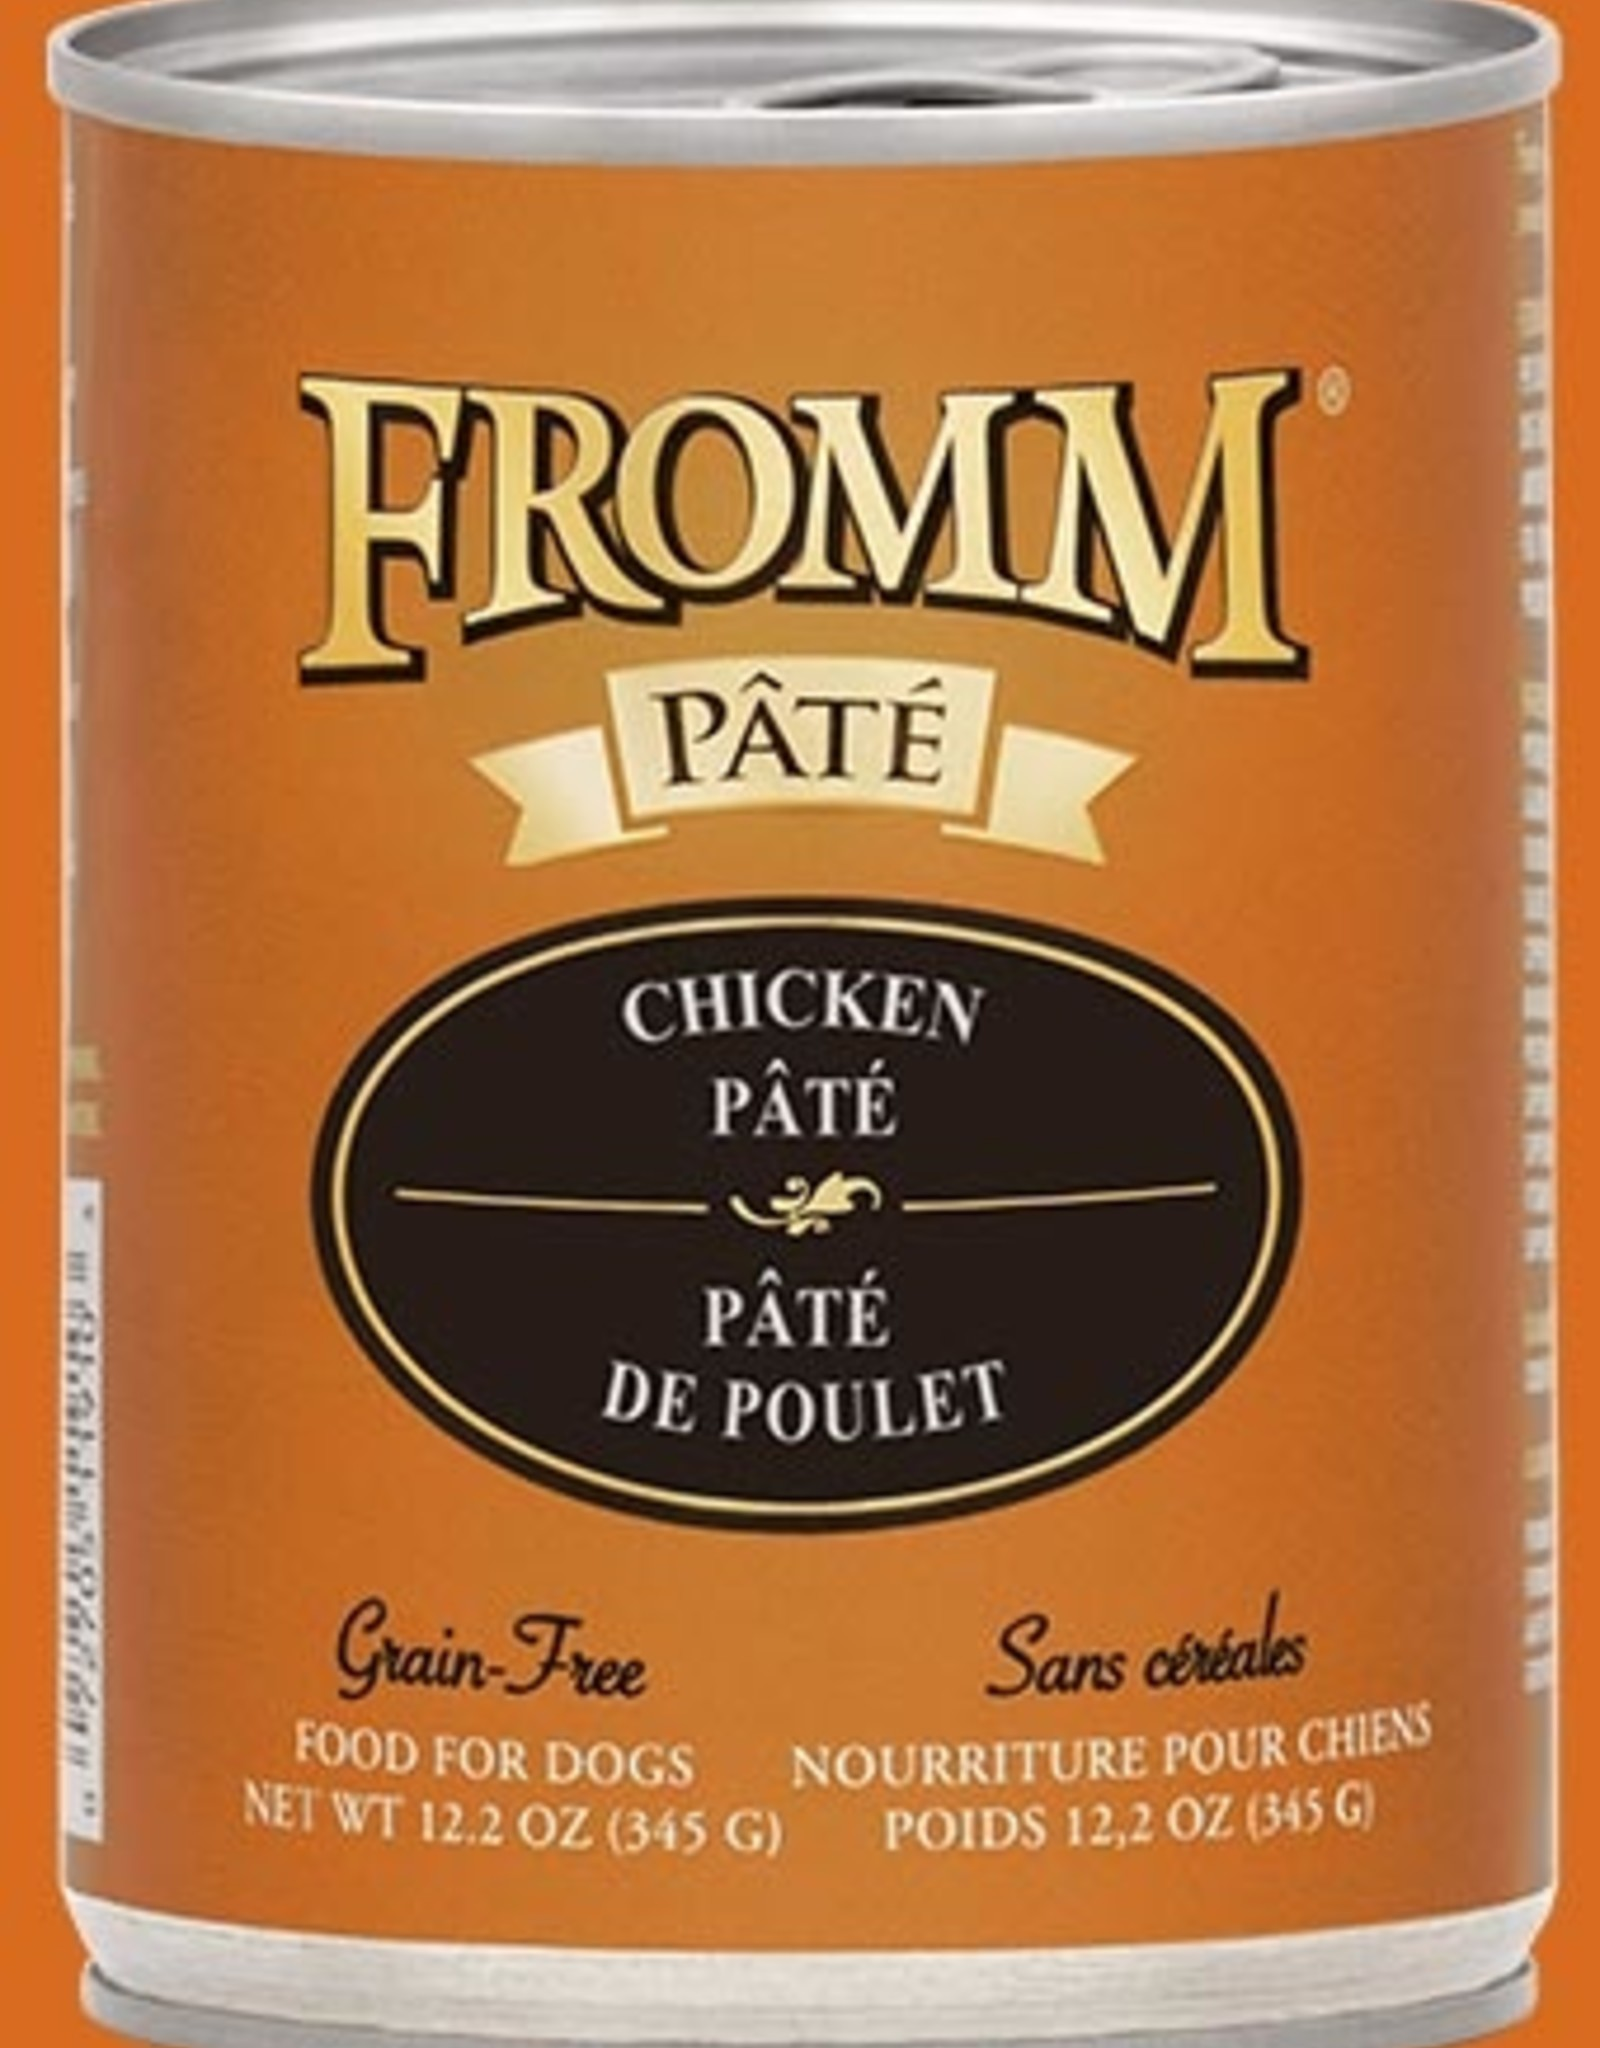 Fromm Chicken Pate 12oz